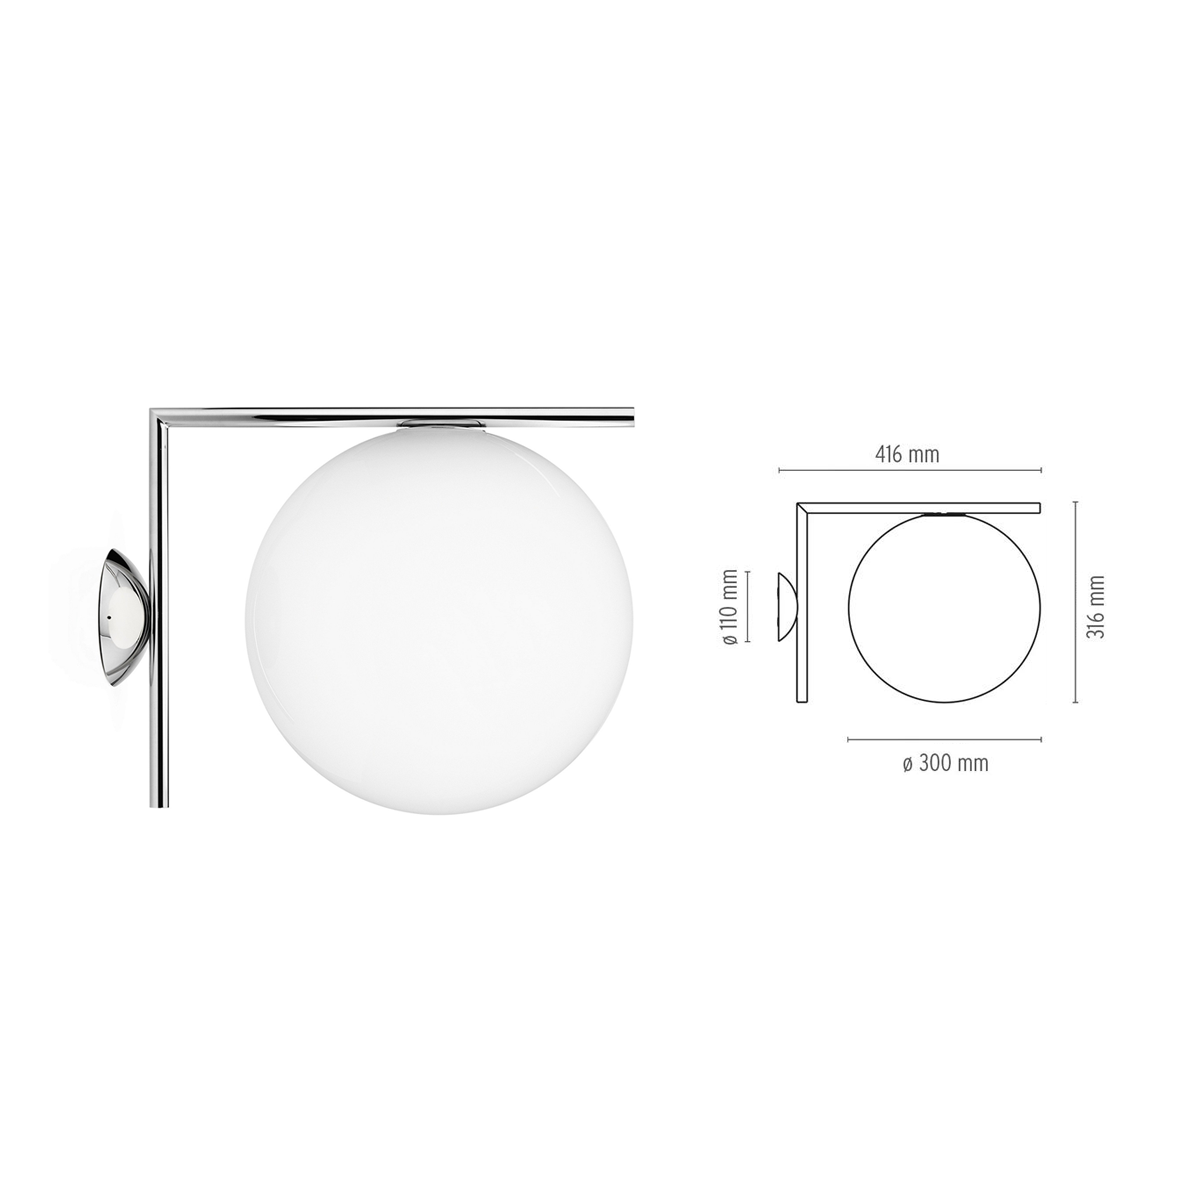 Flos IC Lights C/W 2 Ceiling / Wall Lamp 30cm 恆星系列 壁燈 / 頂燈 大尺寸